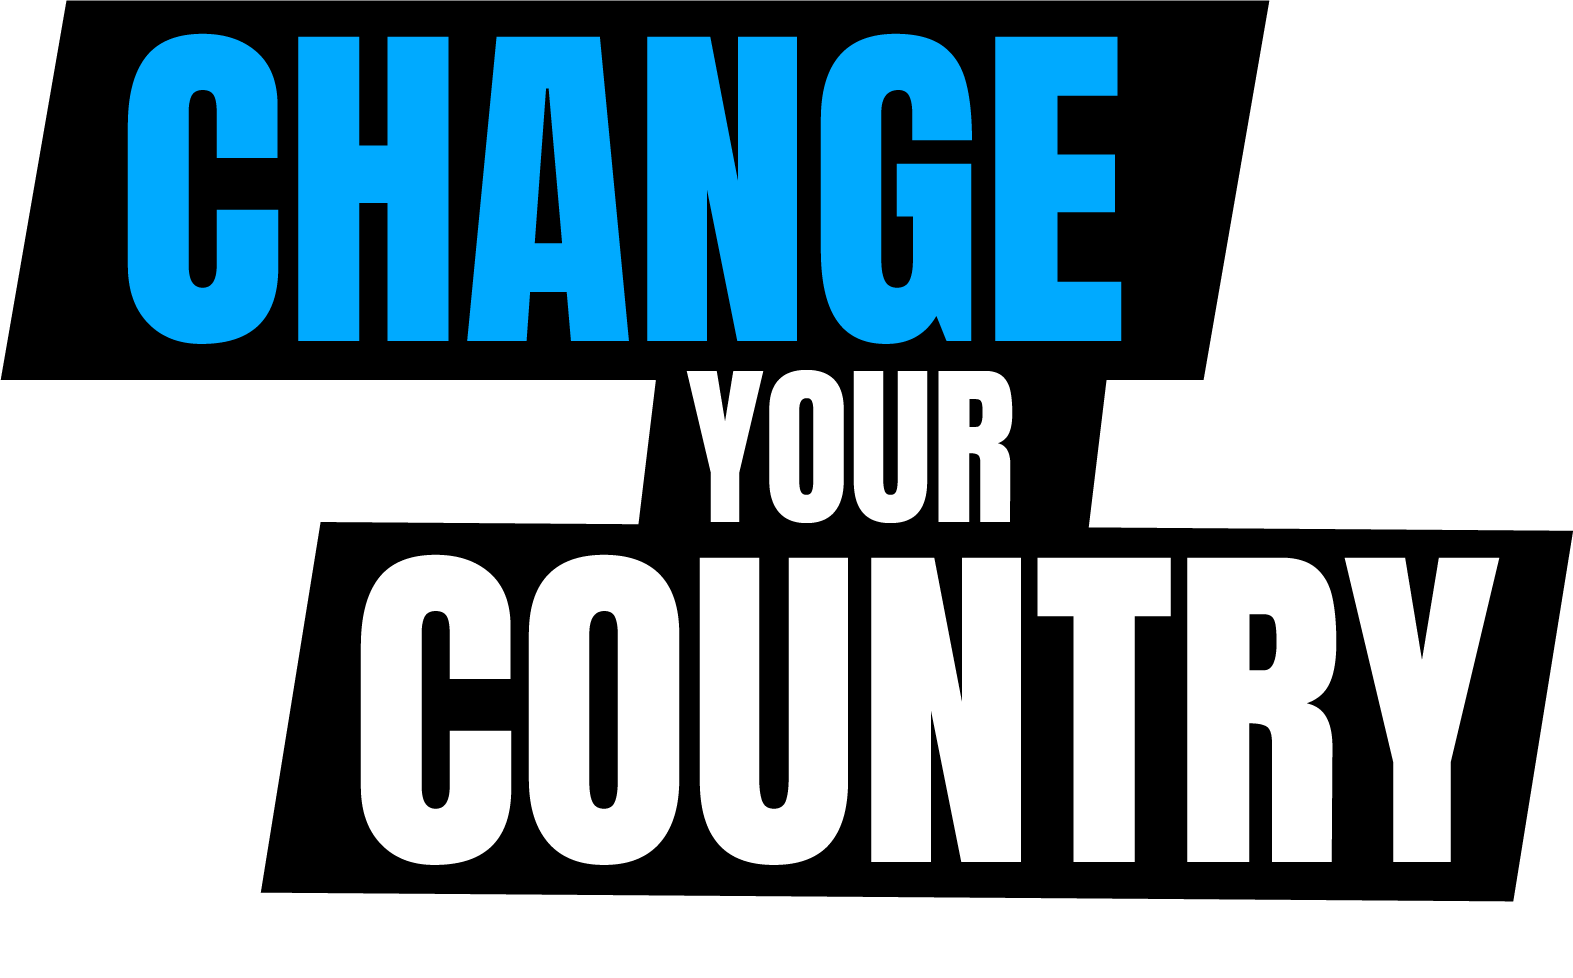 CHANGE YOUR COUNTRY